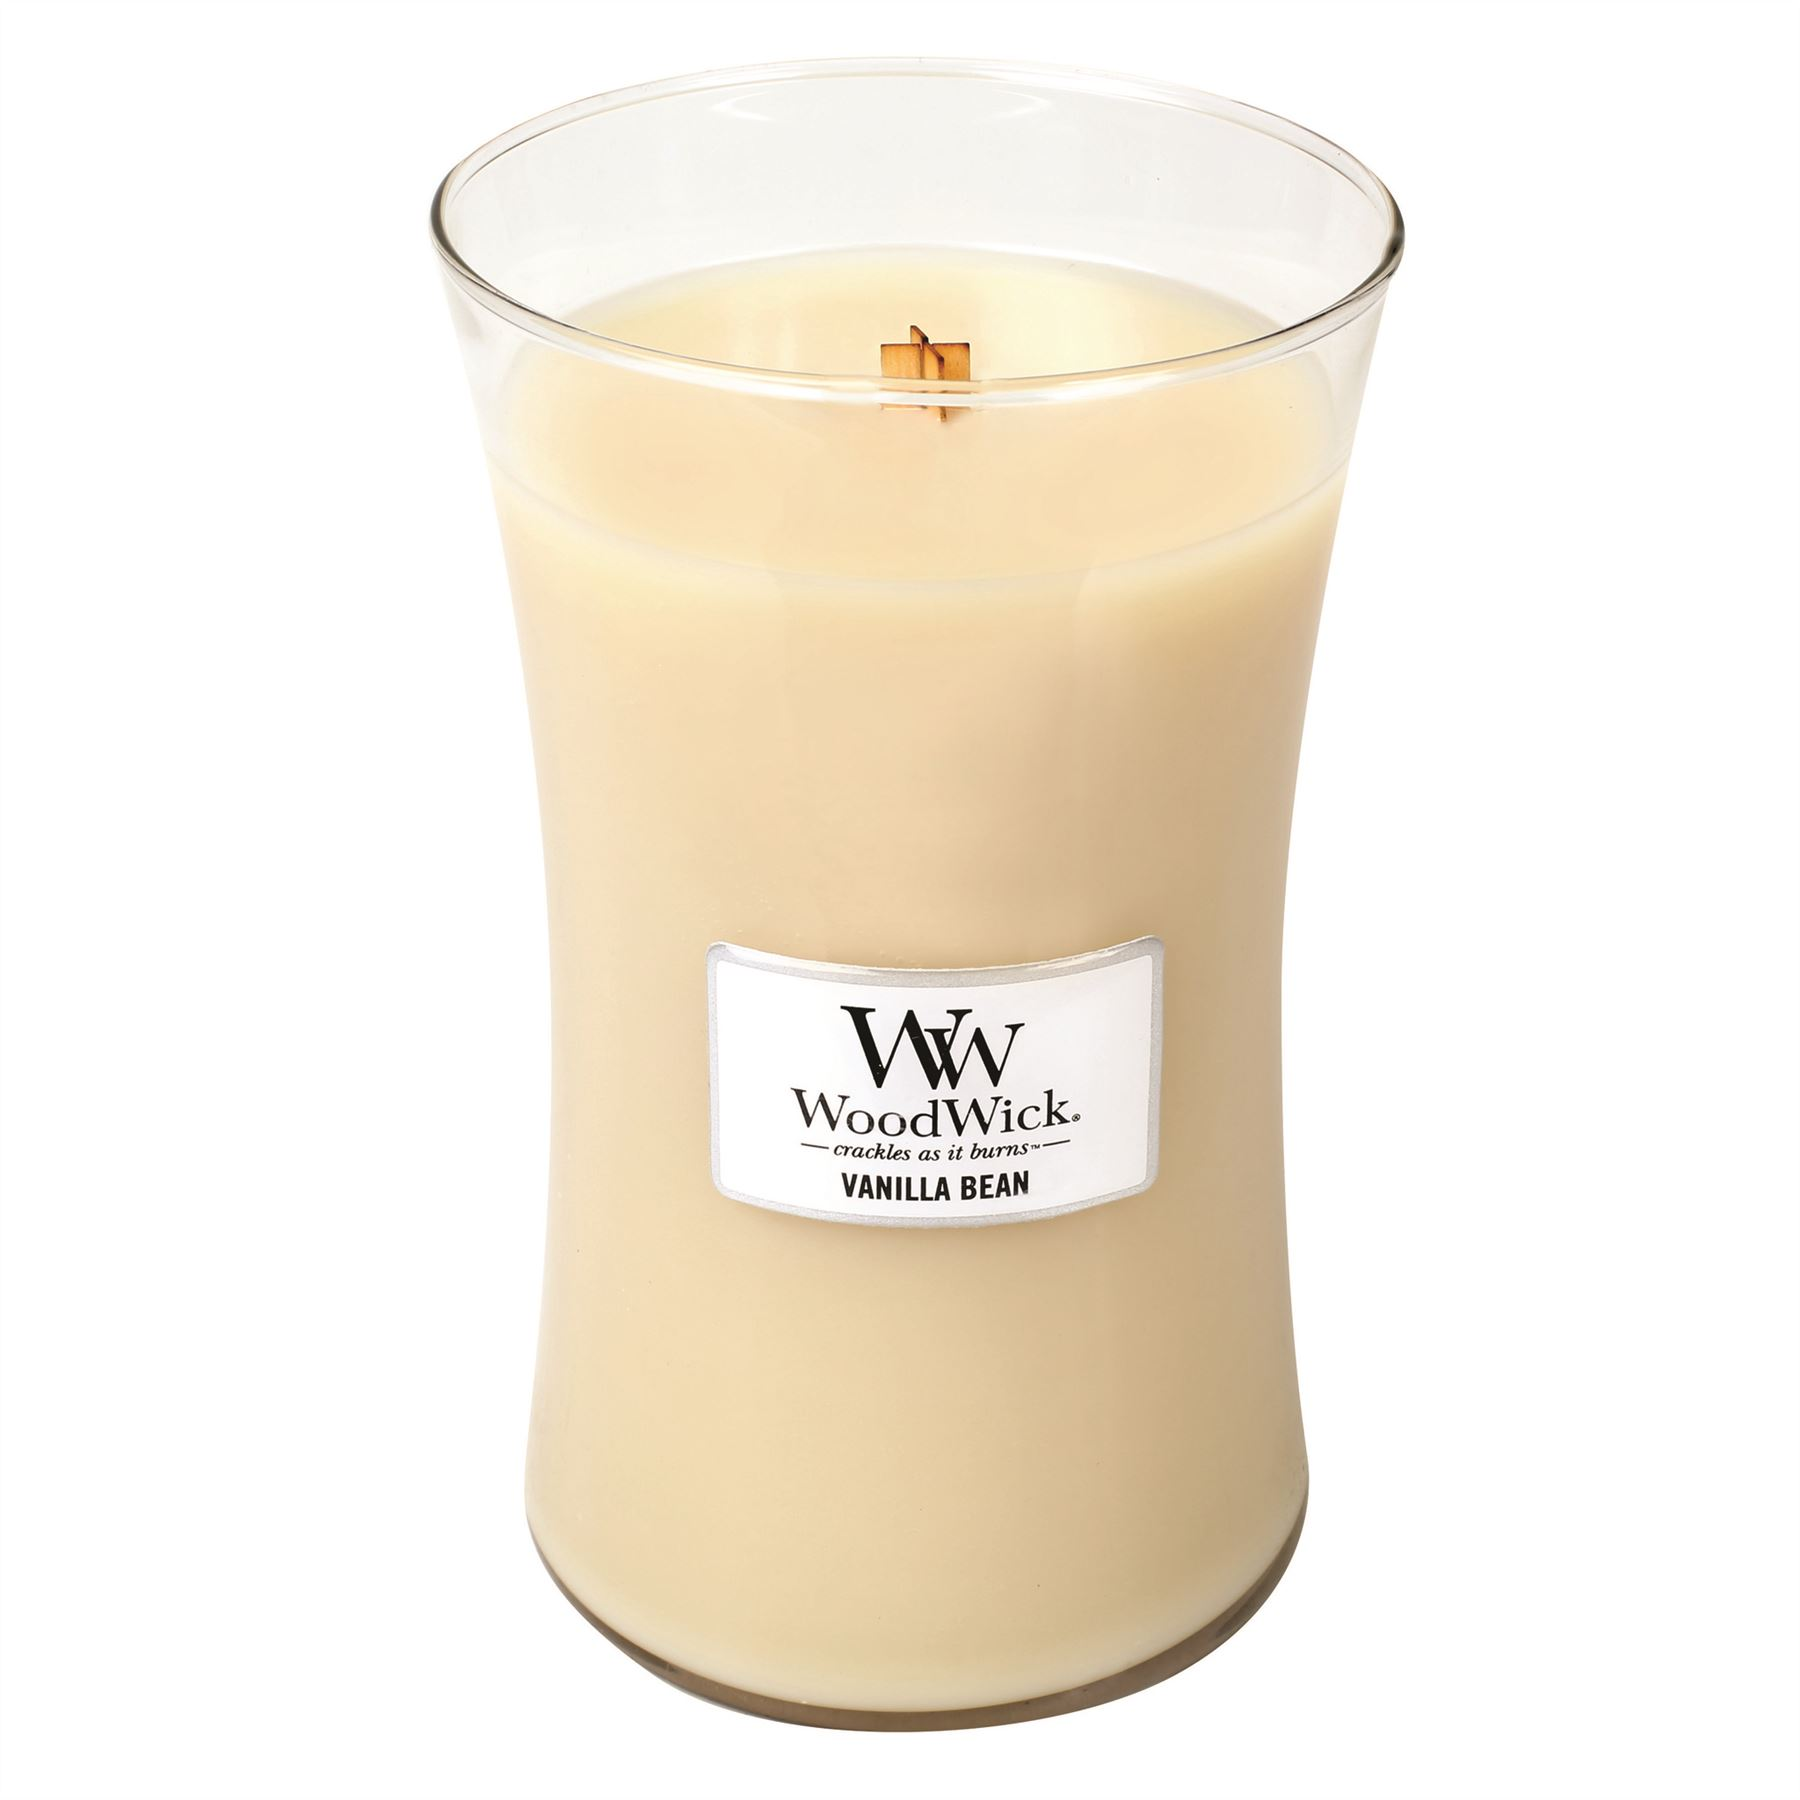 Woodwick Large Jar Candles Various Fragrances Crackle Wick upto 180hrs Burntime